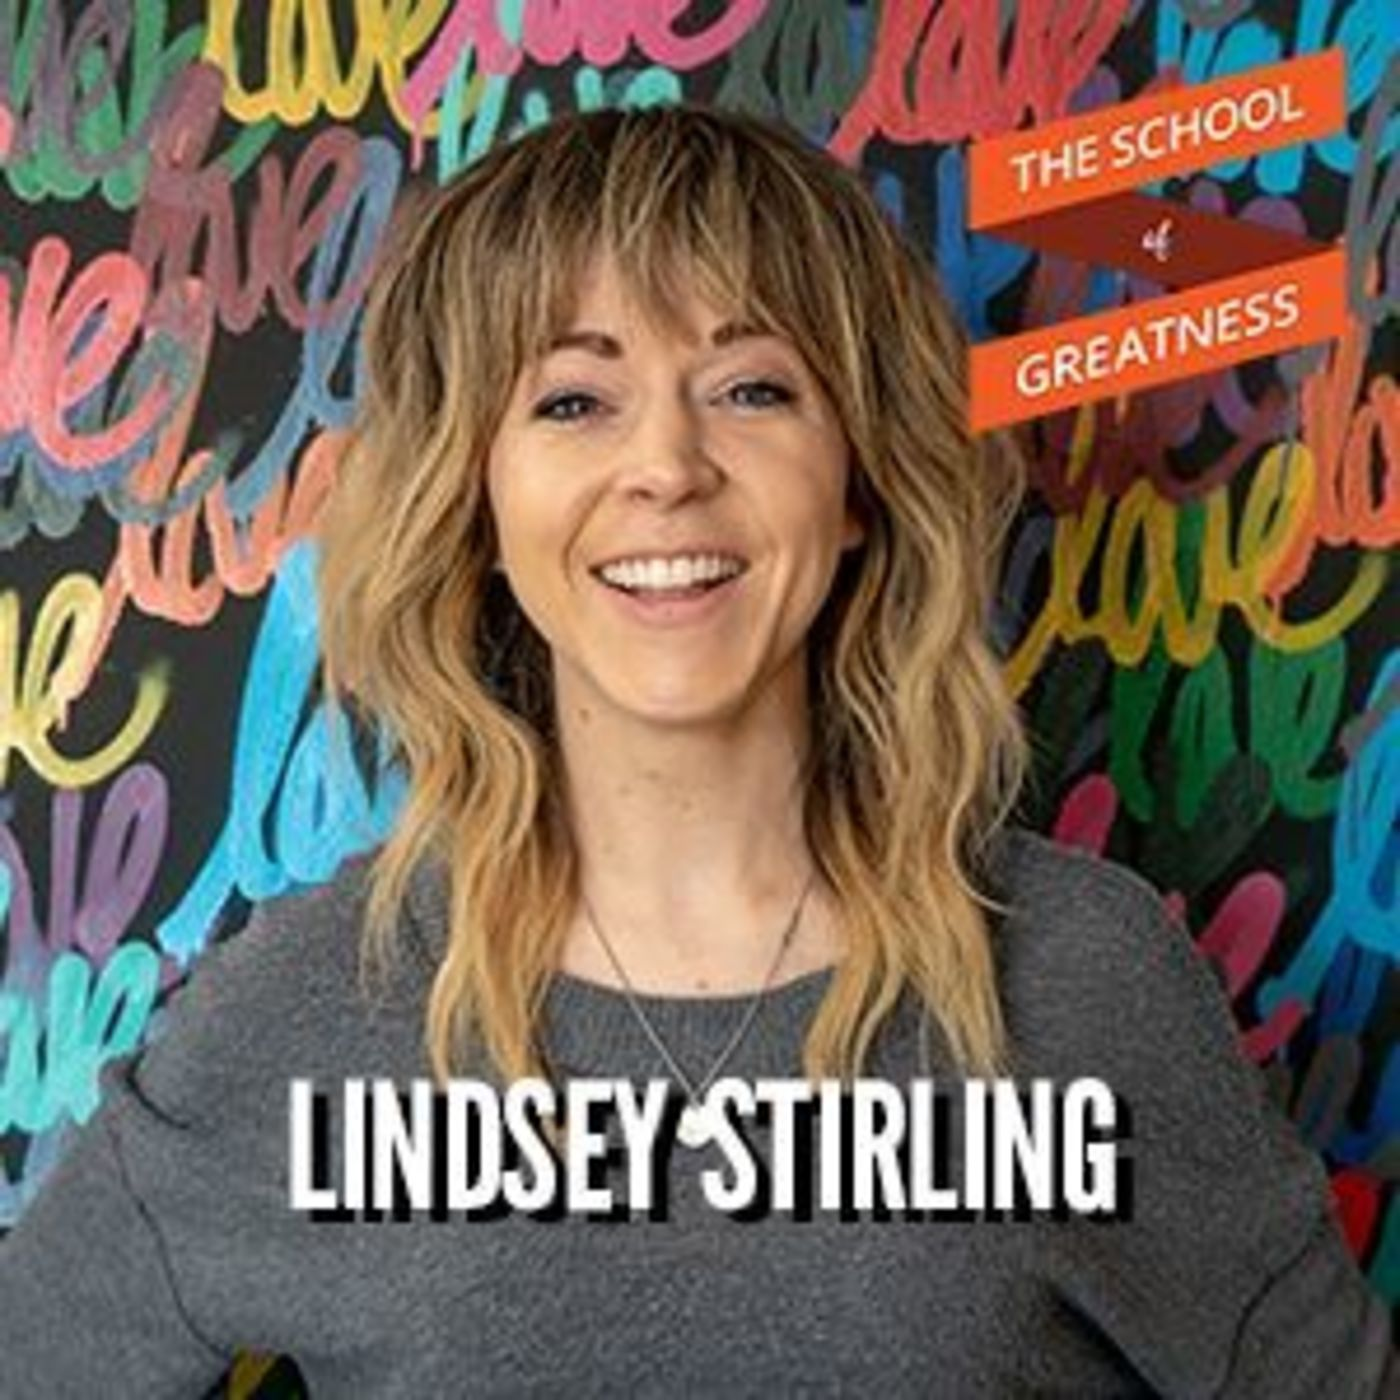 845 Lindsey Stirling on Facing Loss, Dreaming Big, and Becoming a Superstar